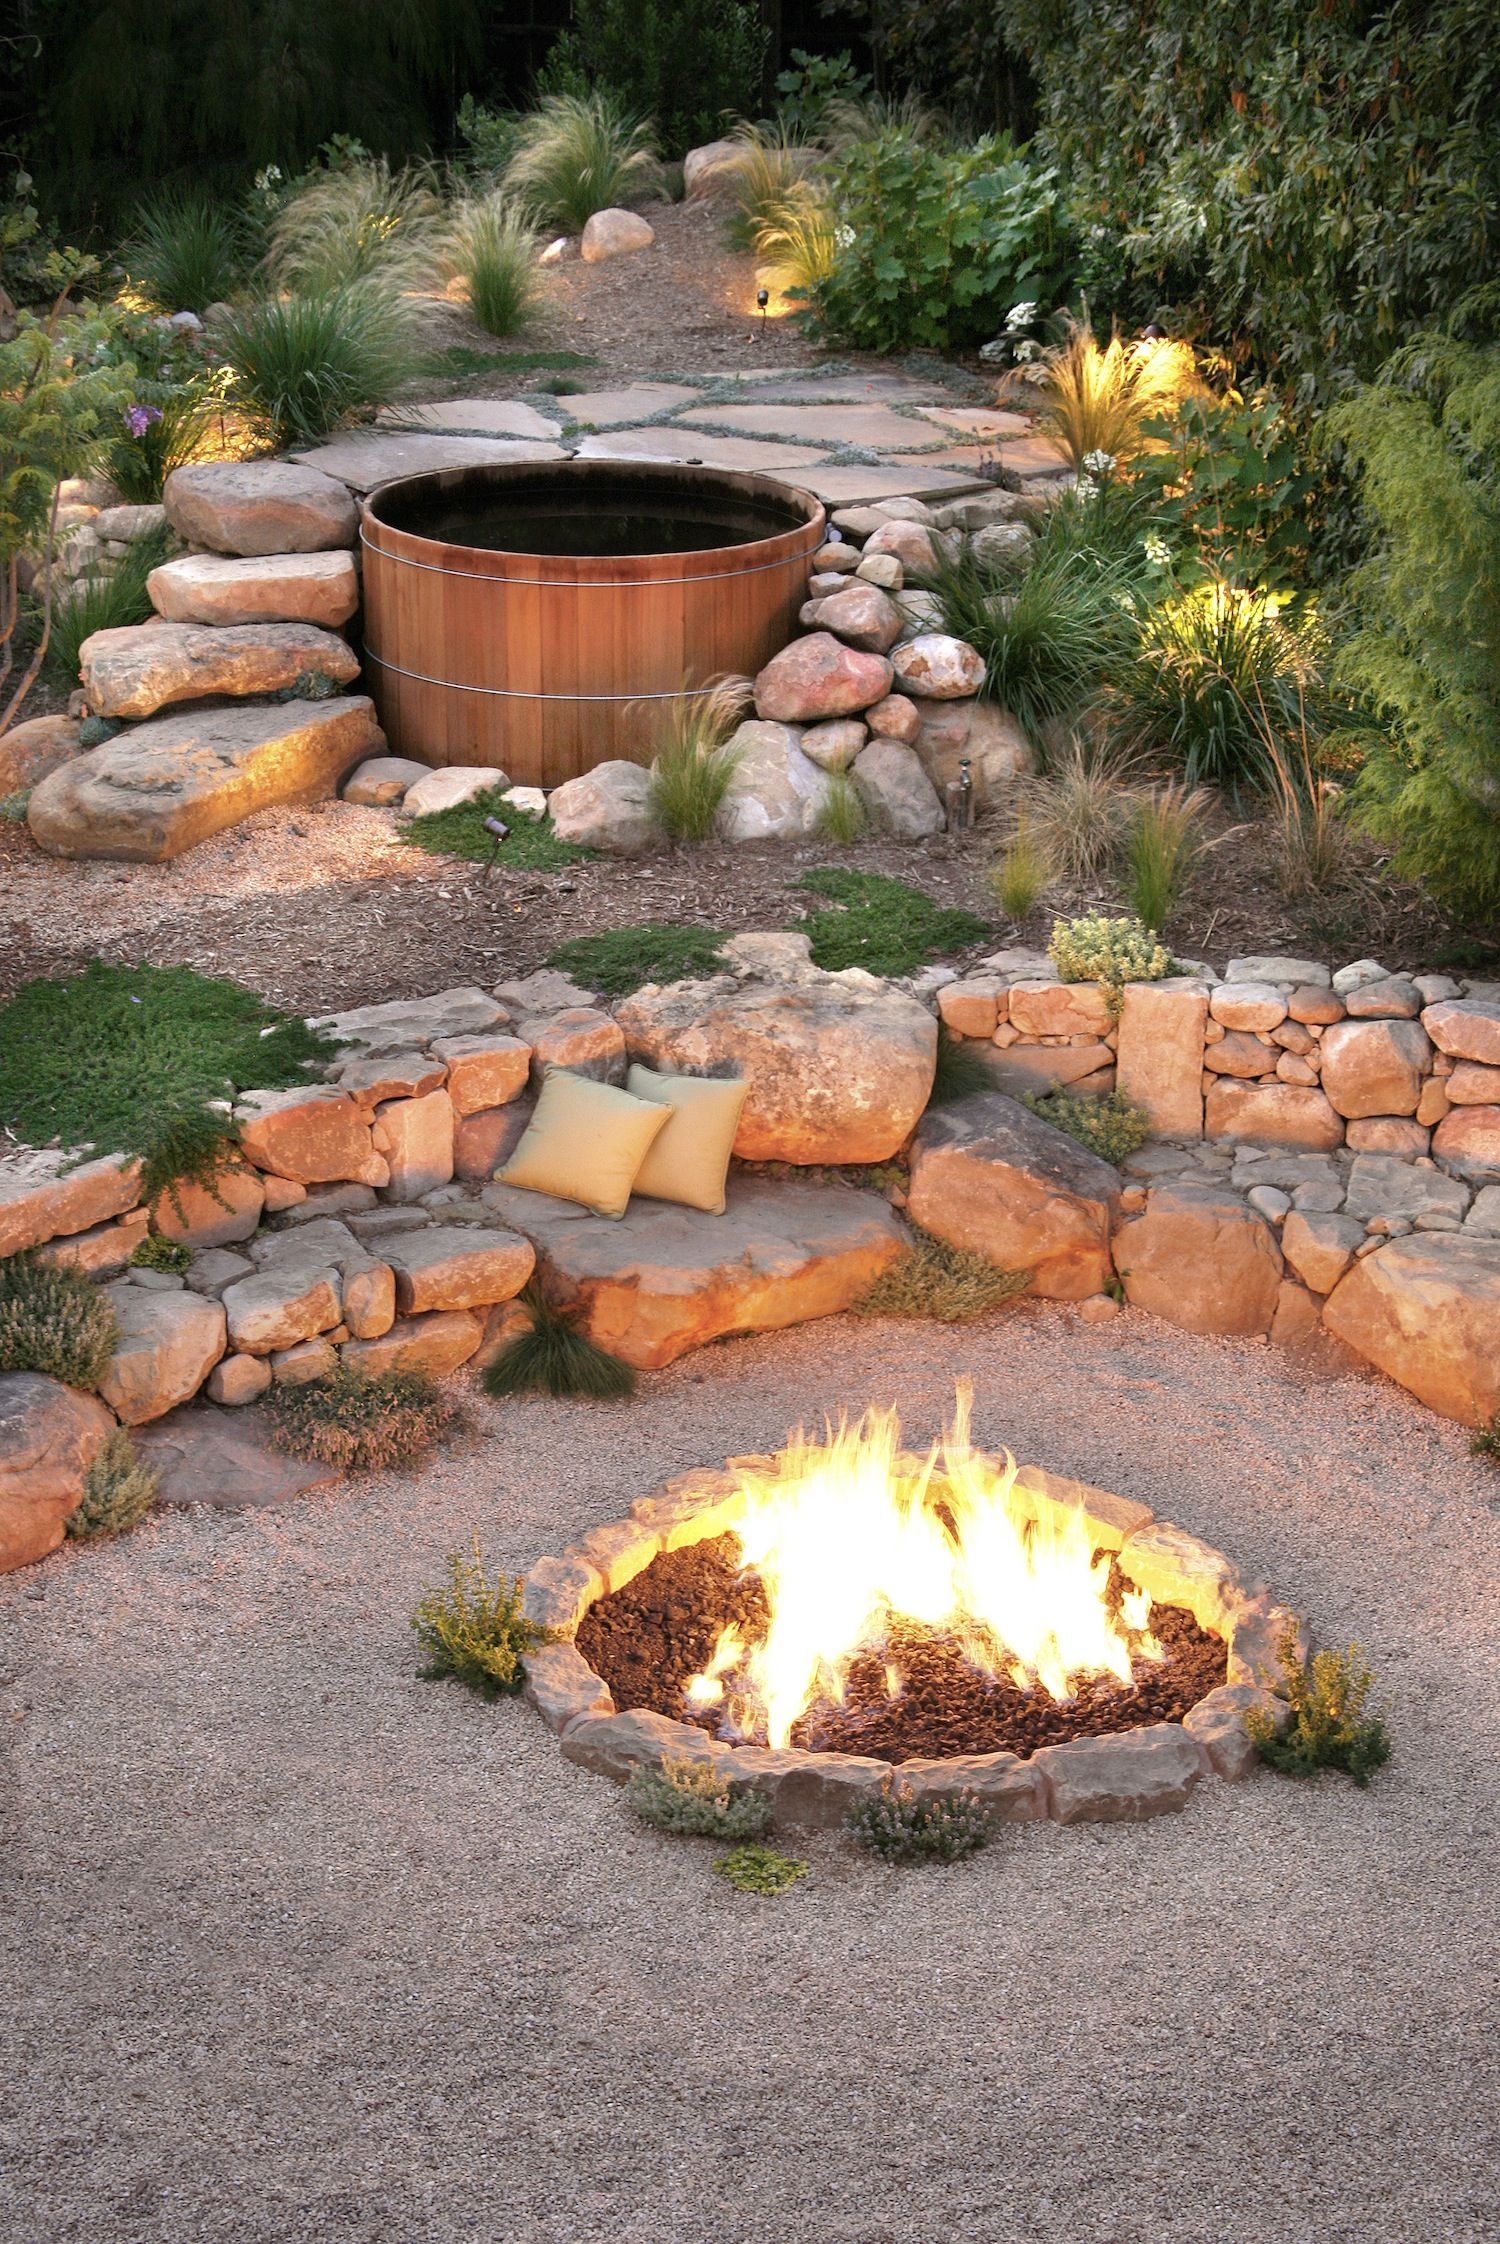 Our Wooden Hot Tub With Award Winning Landscape Design By Grace Designs Www Gordonandgrant